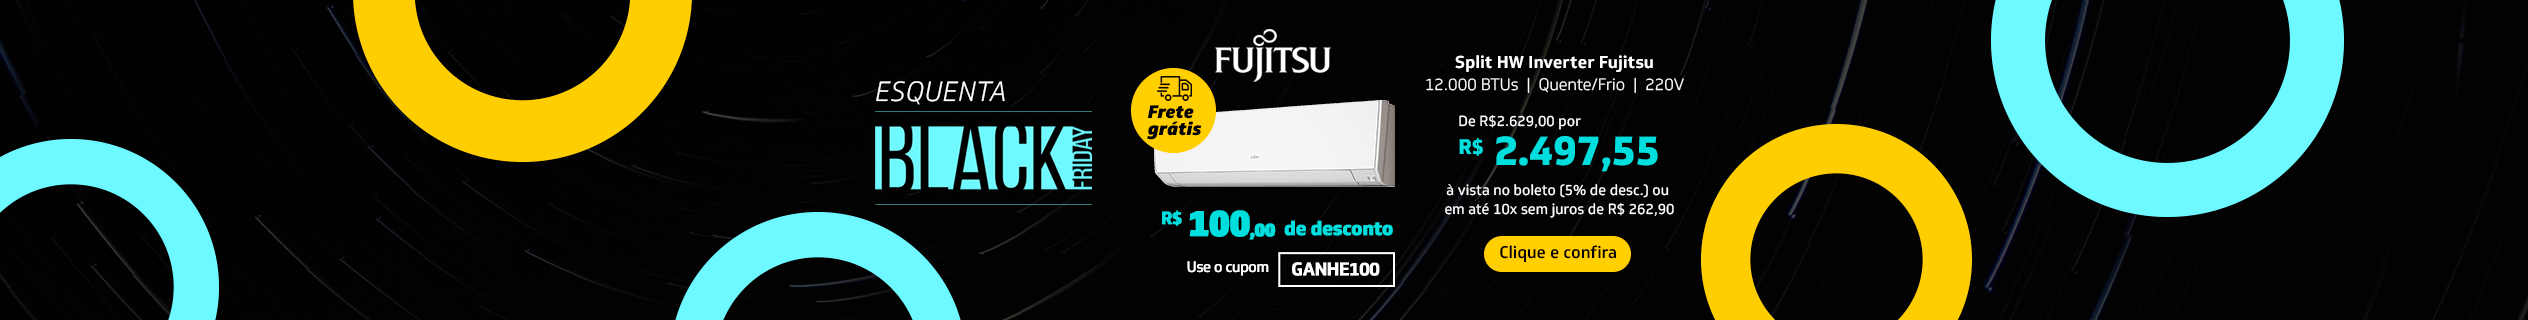 full_banner-desktop-esquenta-black-0911-1411-3.png